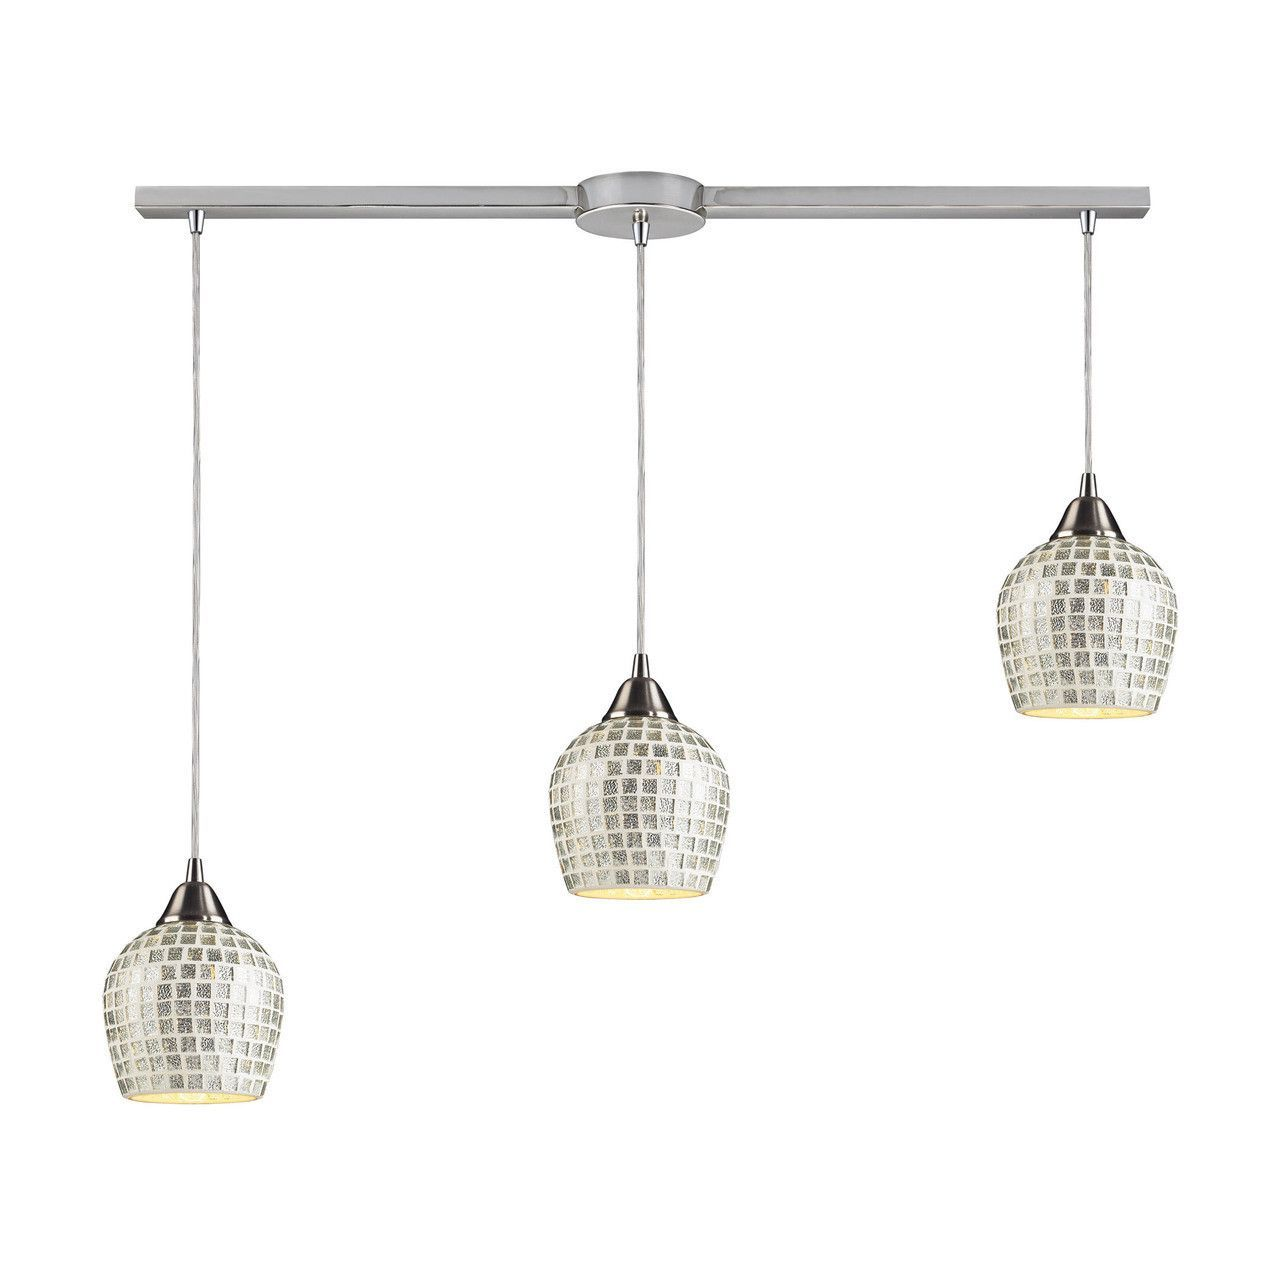 Fusion light pendant in satin nickel and silver glass lslv